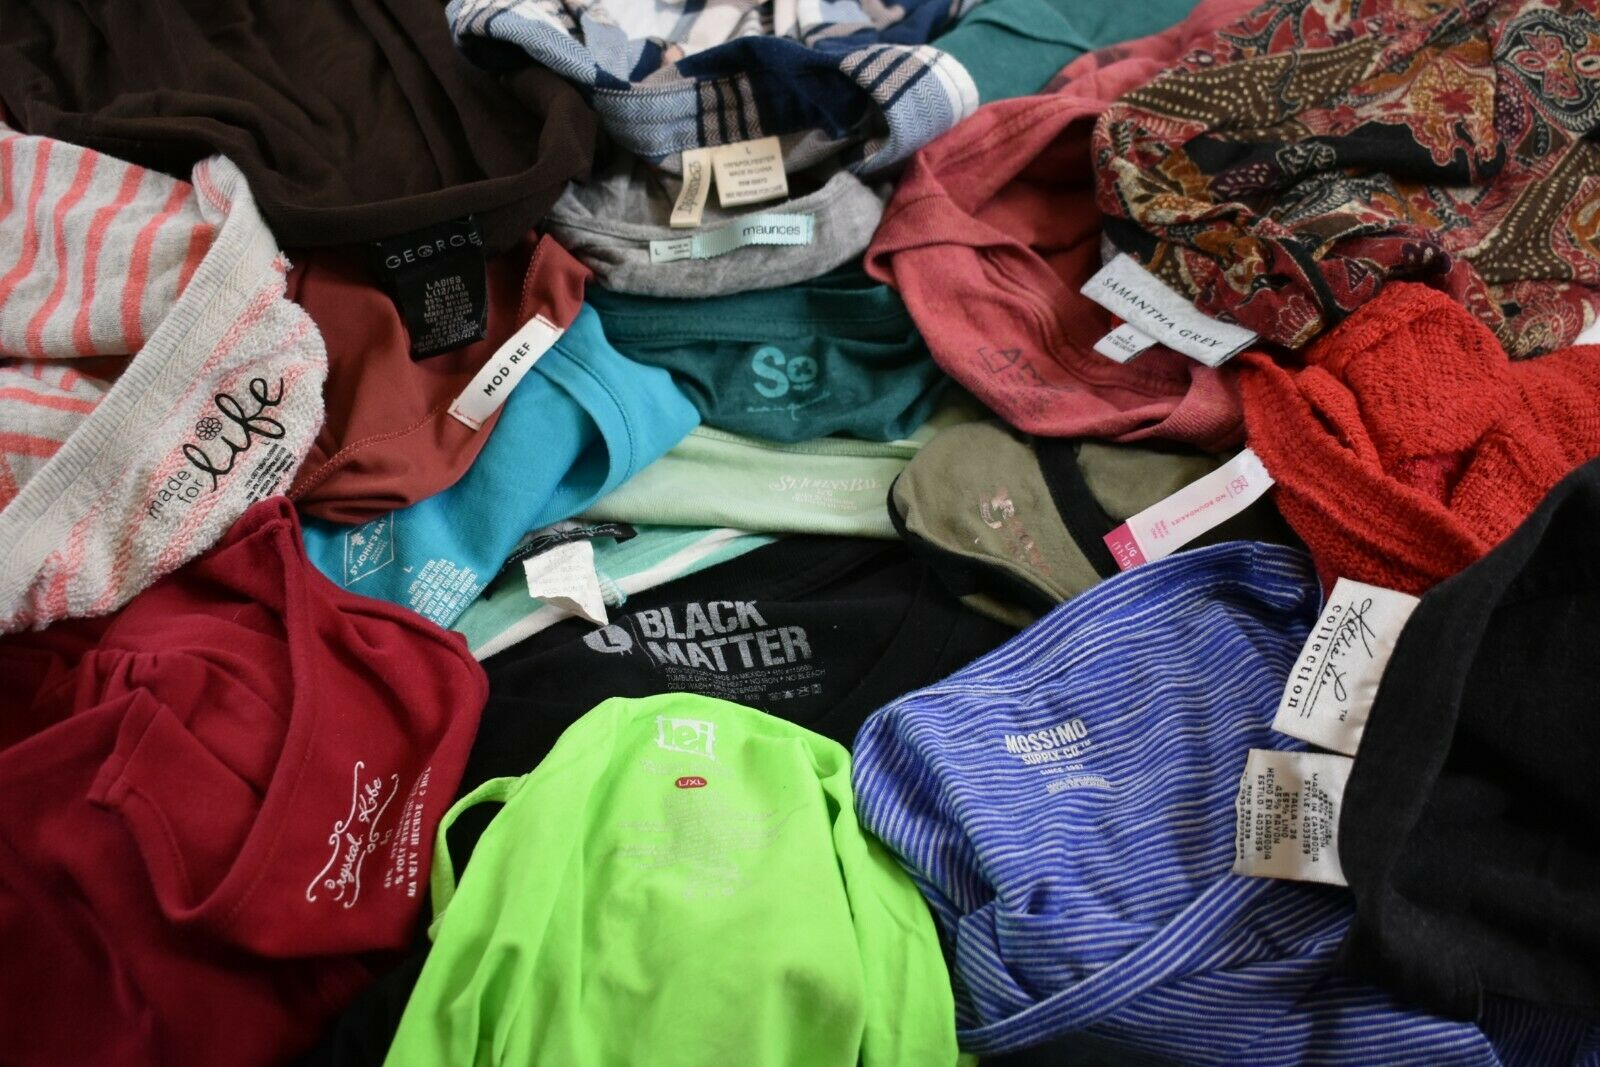 Bulk  Lot of 23 Lands End OP Hottemoerot Woherren S Various Brands & Styles Tops